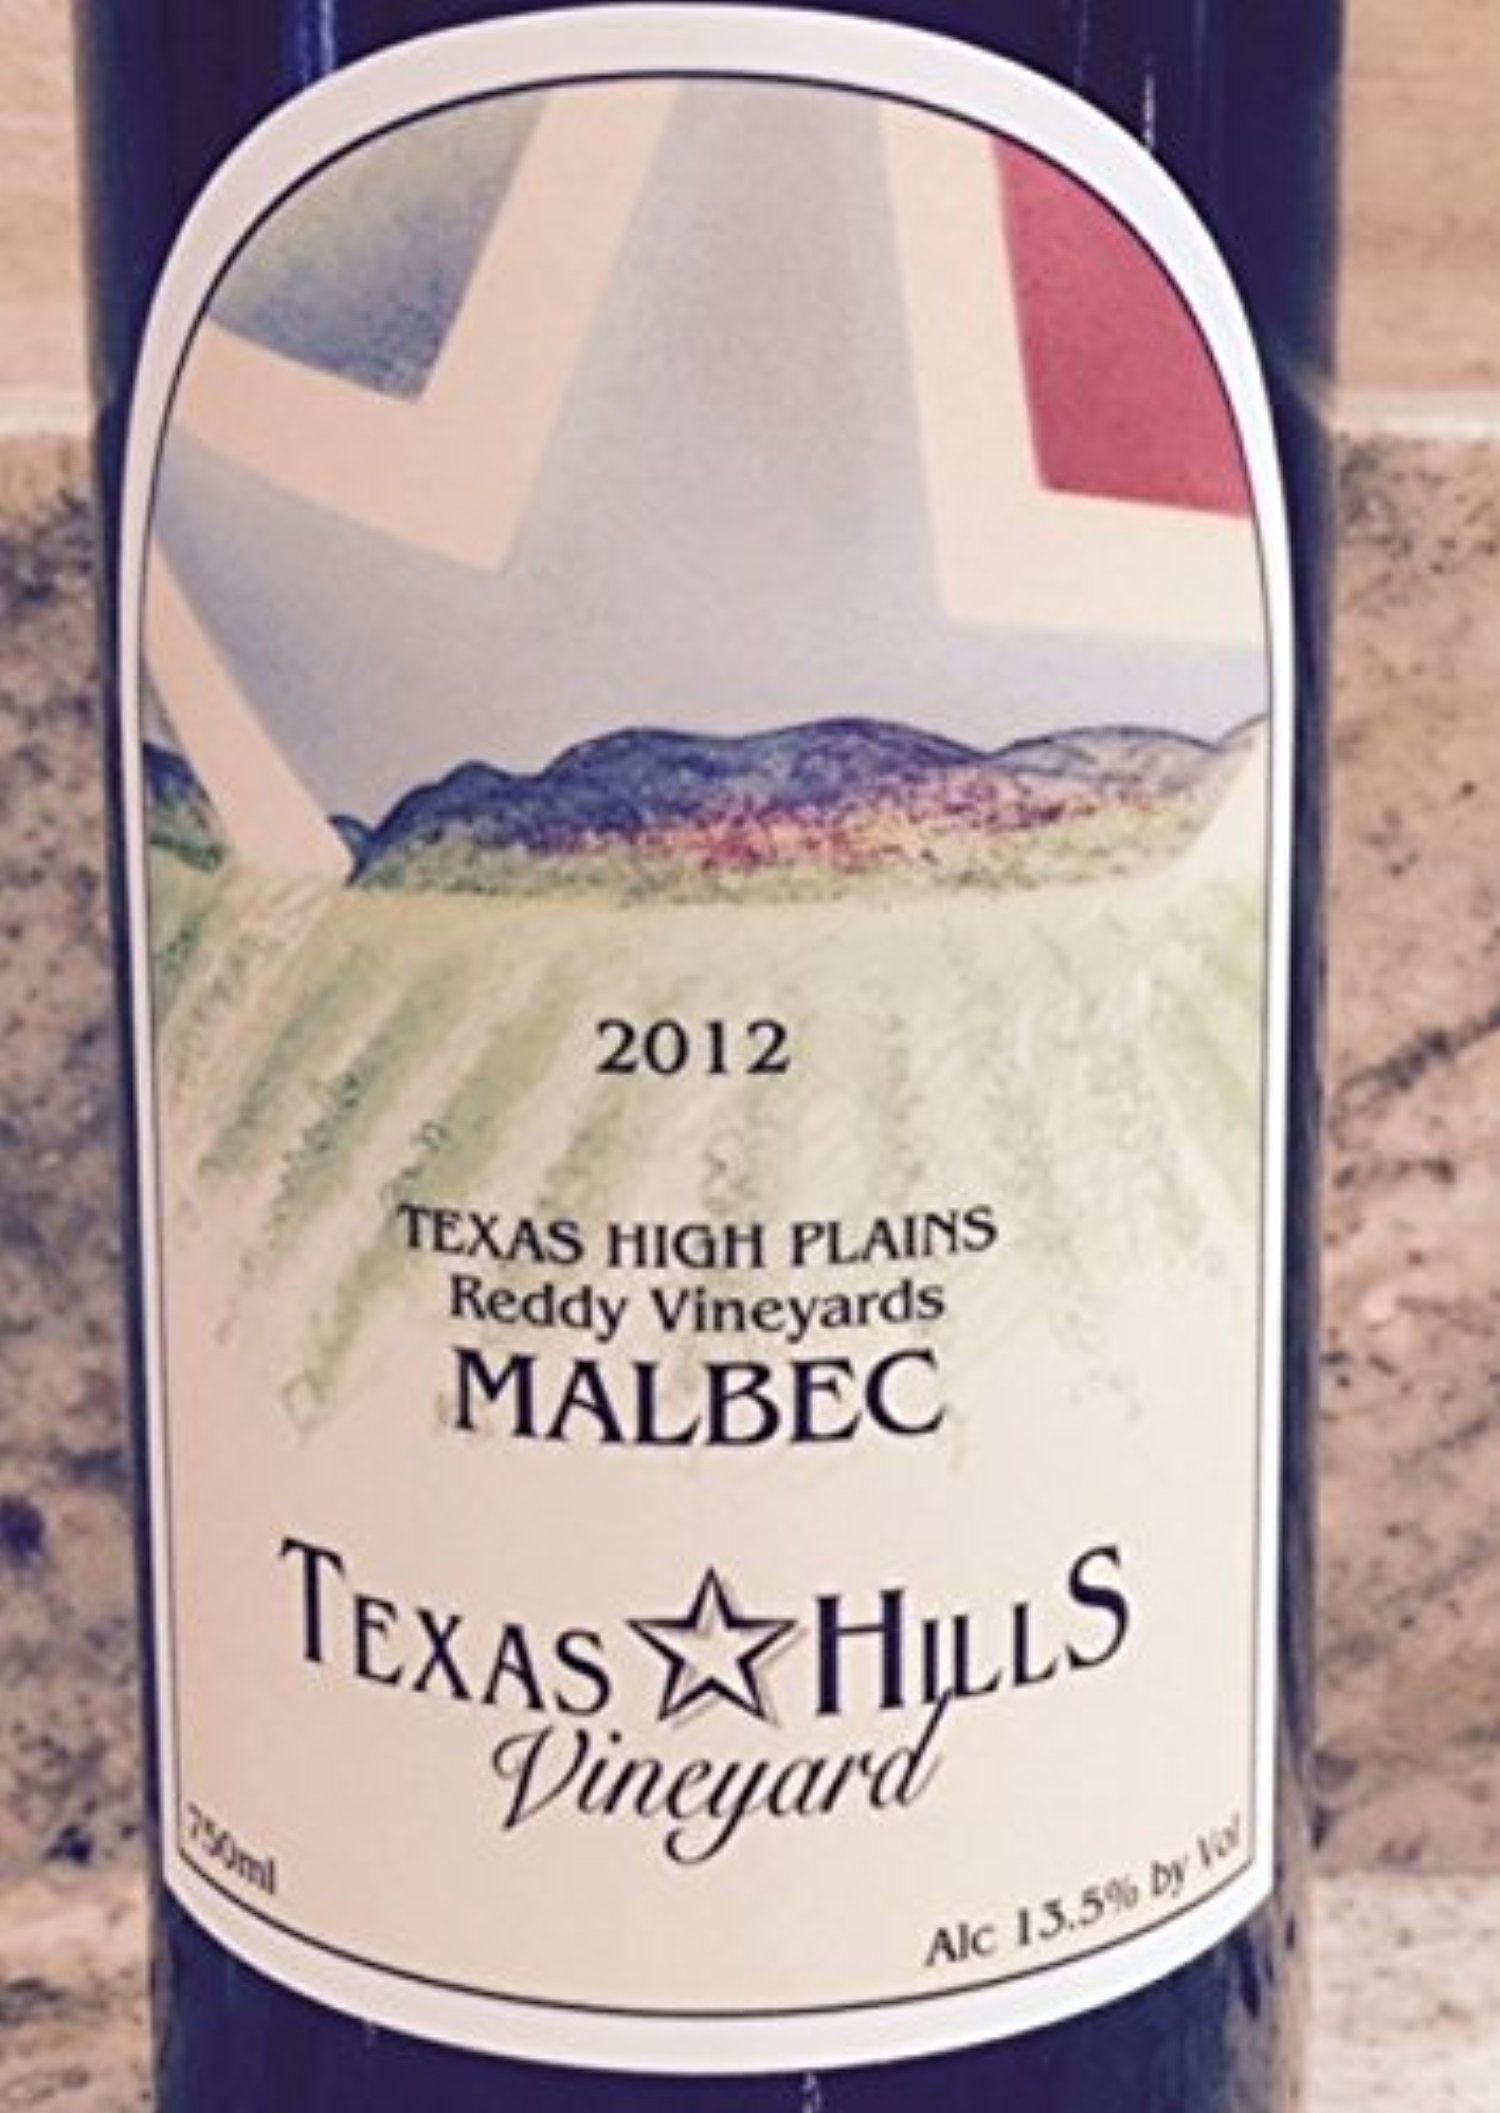 2012 Texas Hills Vineyard Reddy Malbec 750 mL Wine -- Awesome products selected by Anna Churchill